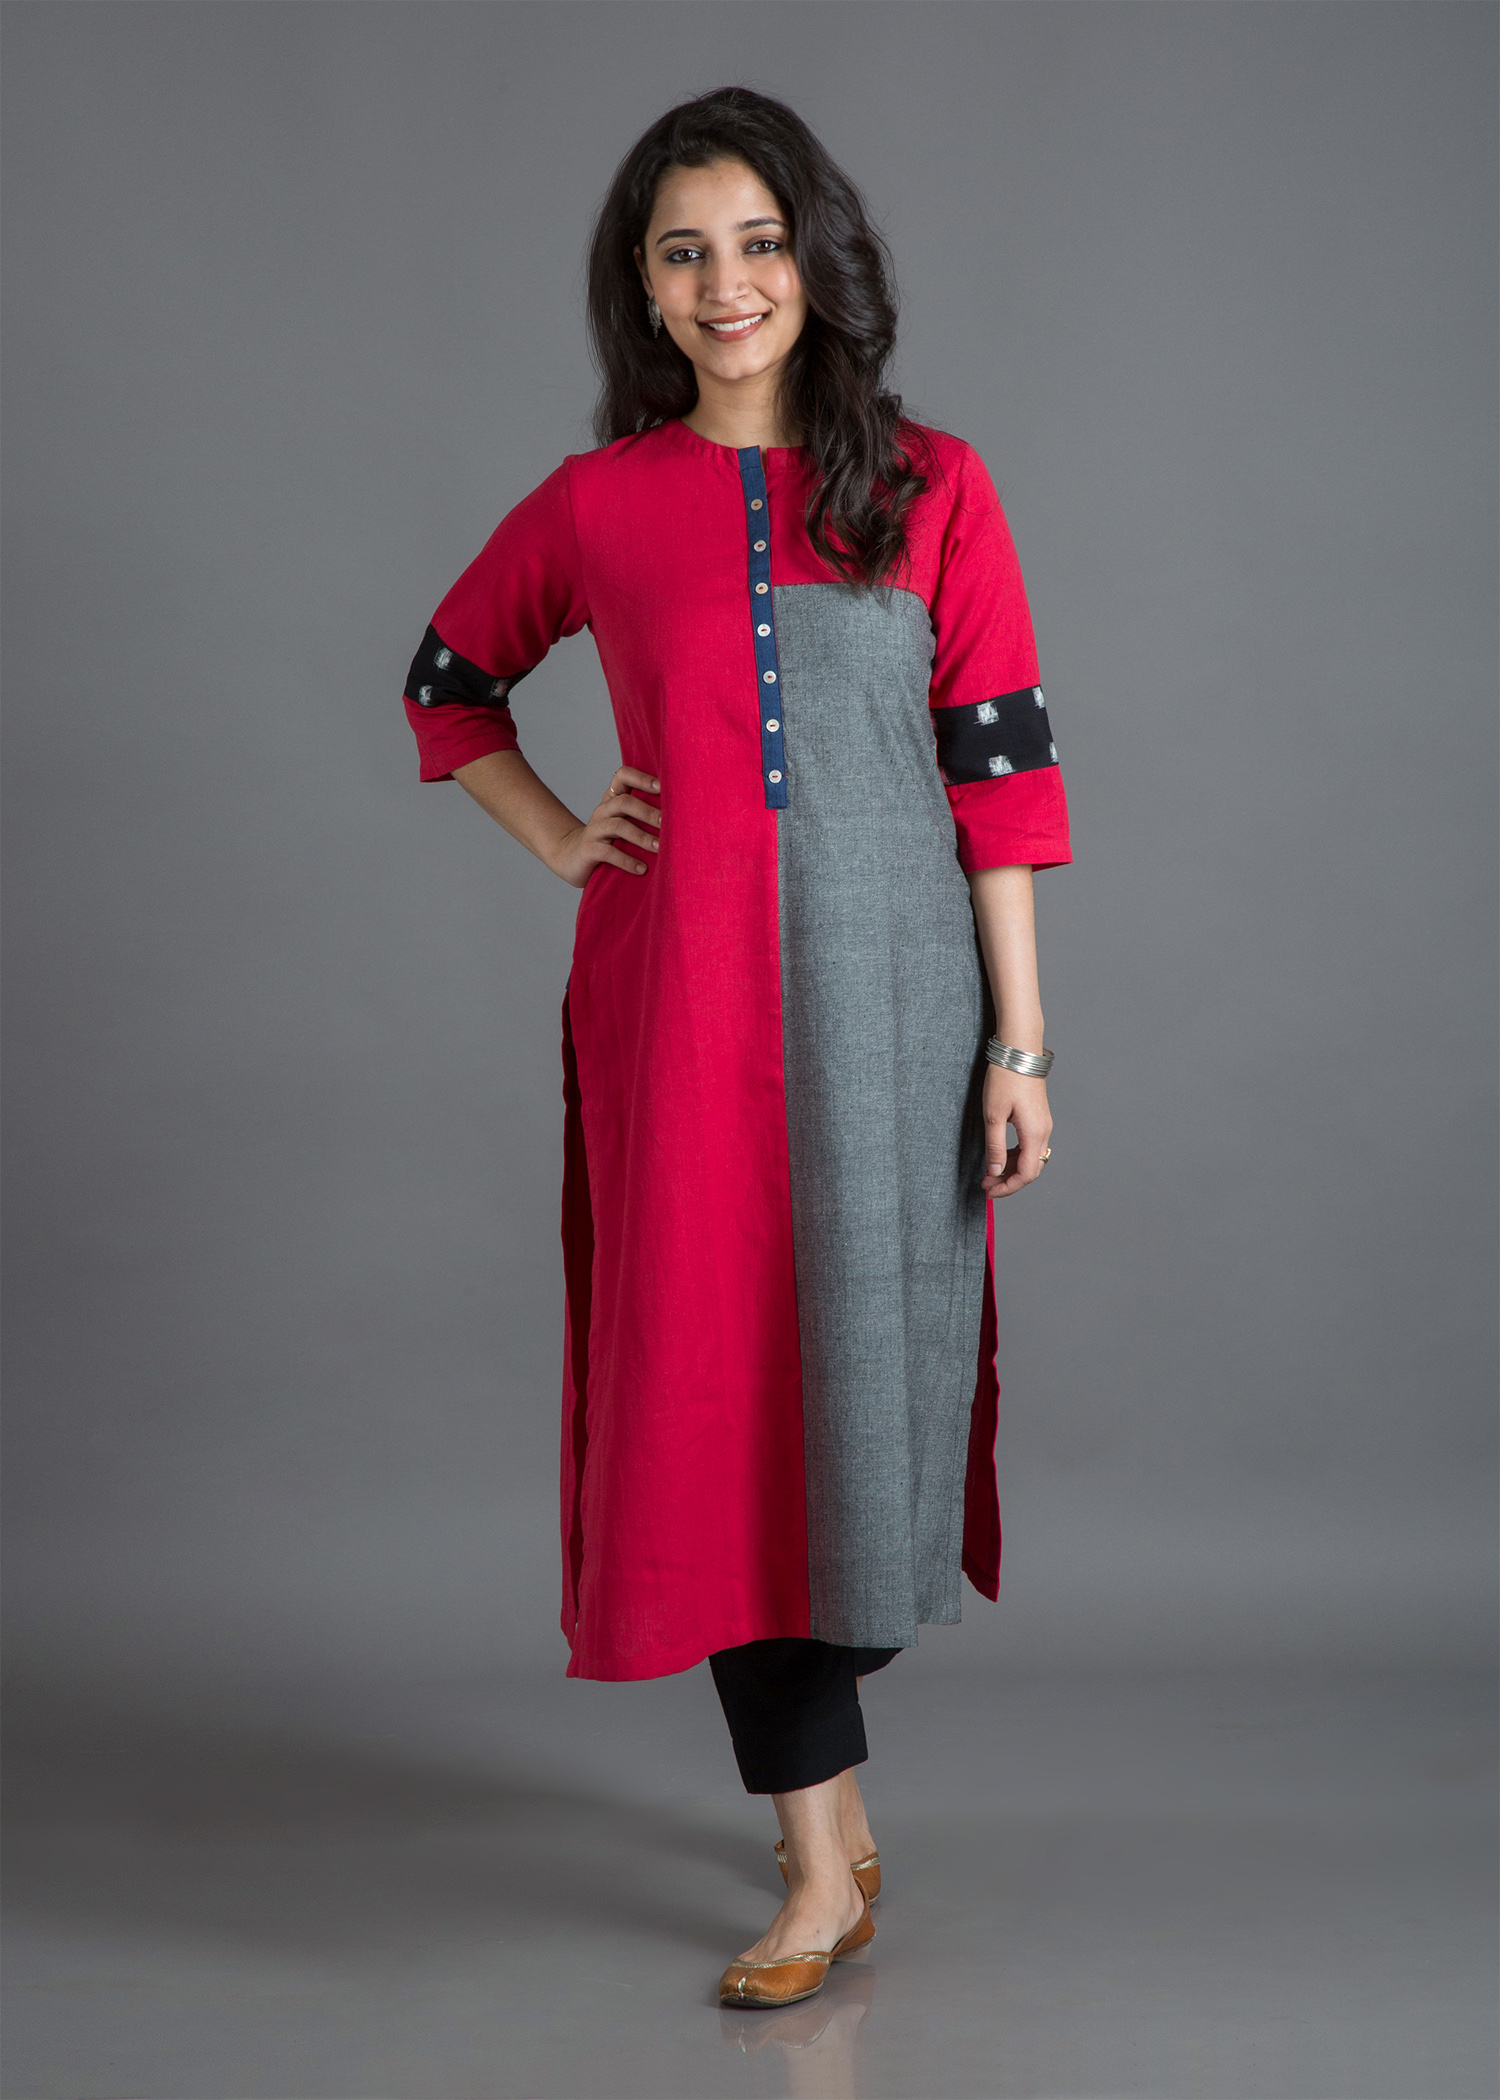 Candy Red & Steel Grey Handwoven Cotton & Ikat Kurta